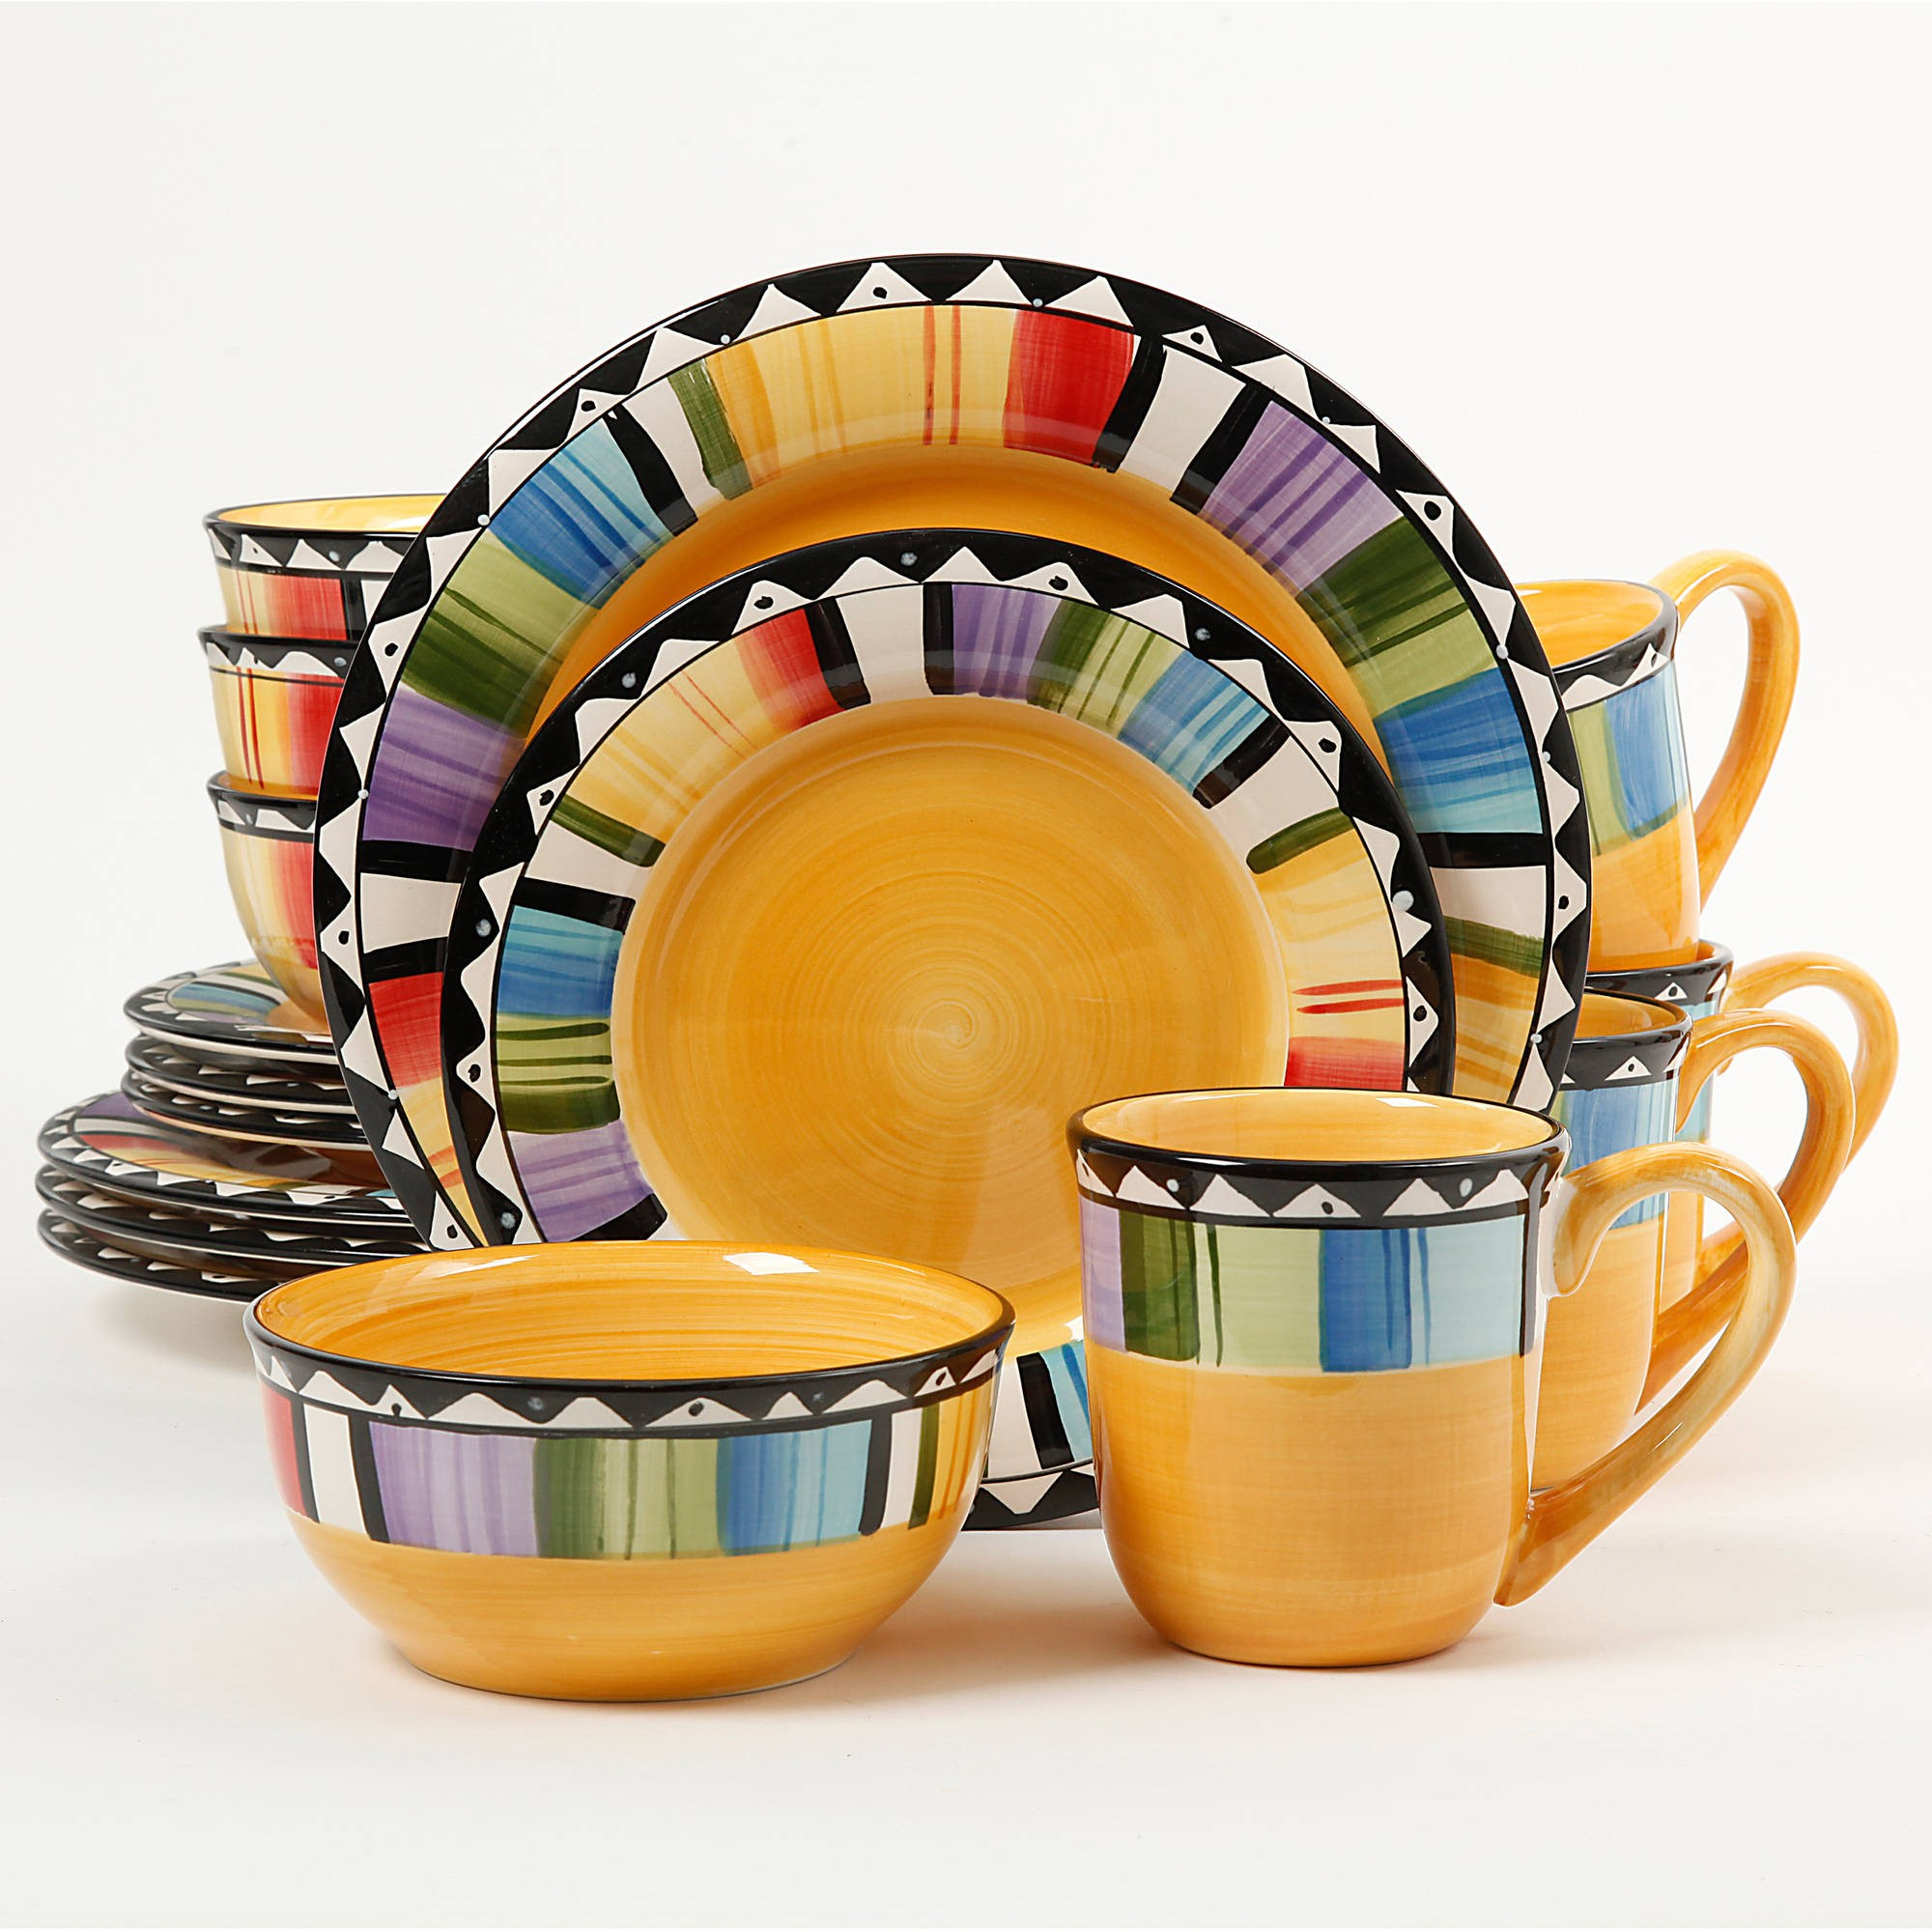 Gibson Home Fandango 16-Piece Dinnerware Set Yellow  sc 1 st  Walmart & Gibson Home Fandango 16-Piece Dinnerware Set Yellow - Walmart.com